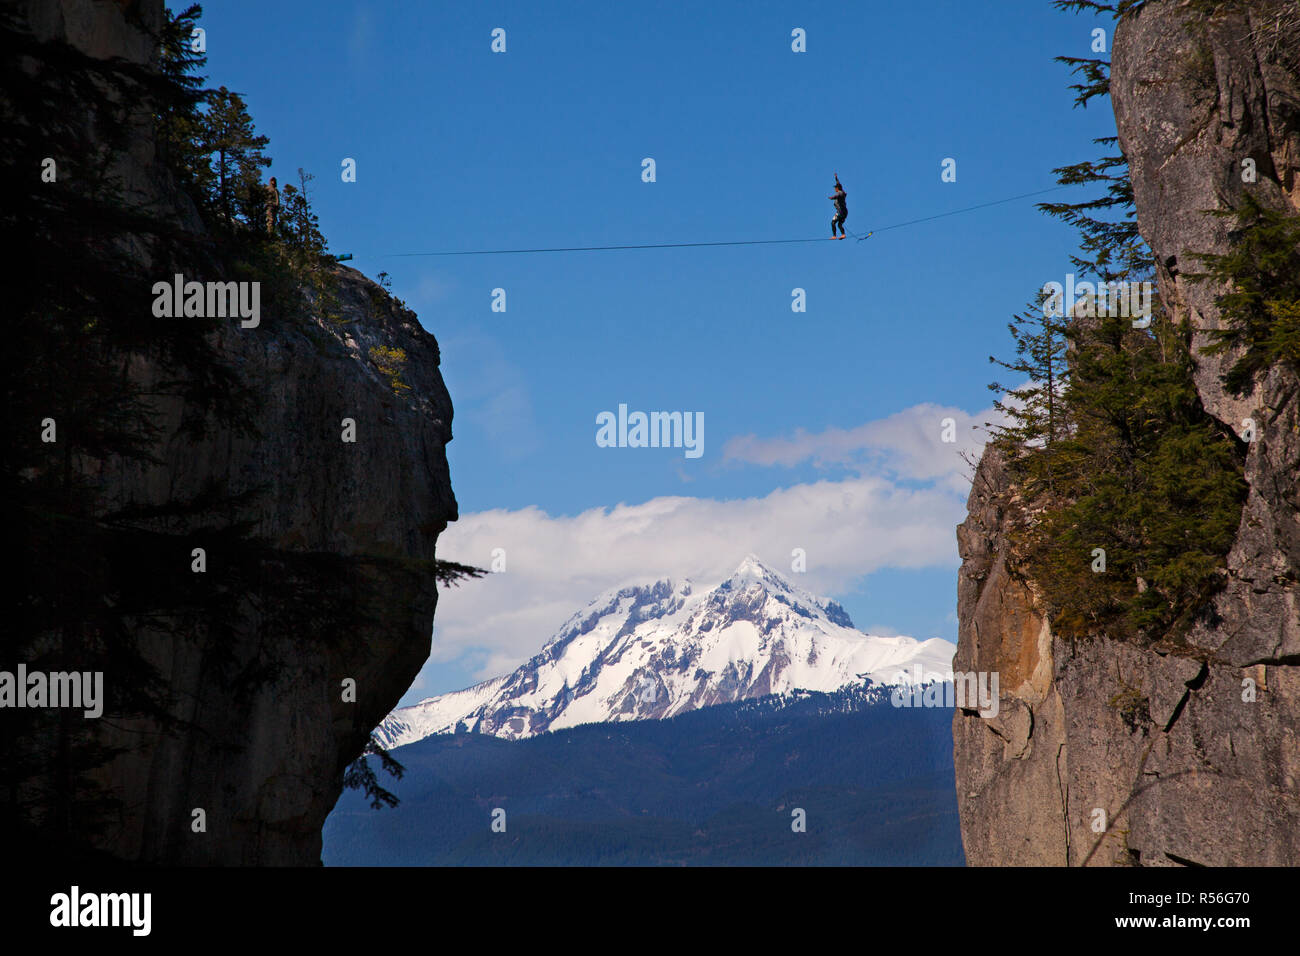 Slack high line in the mountains in Squamish, BC - Stock Image